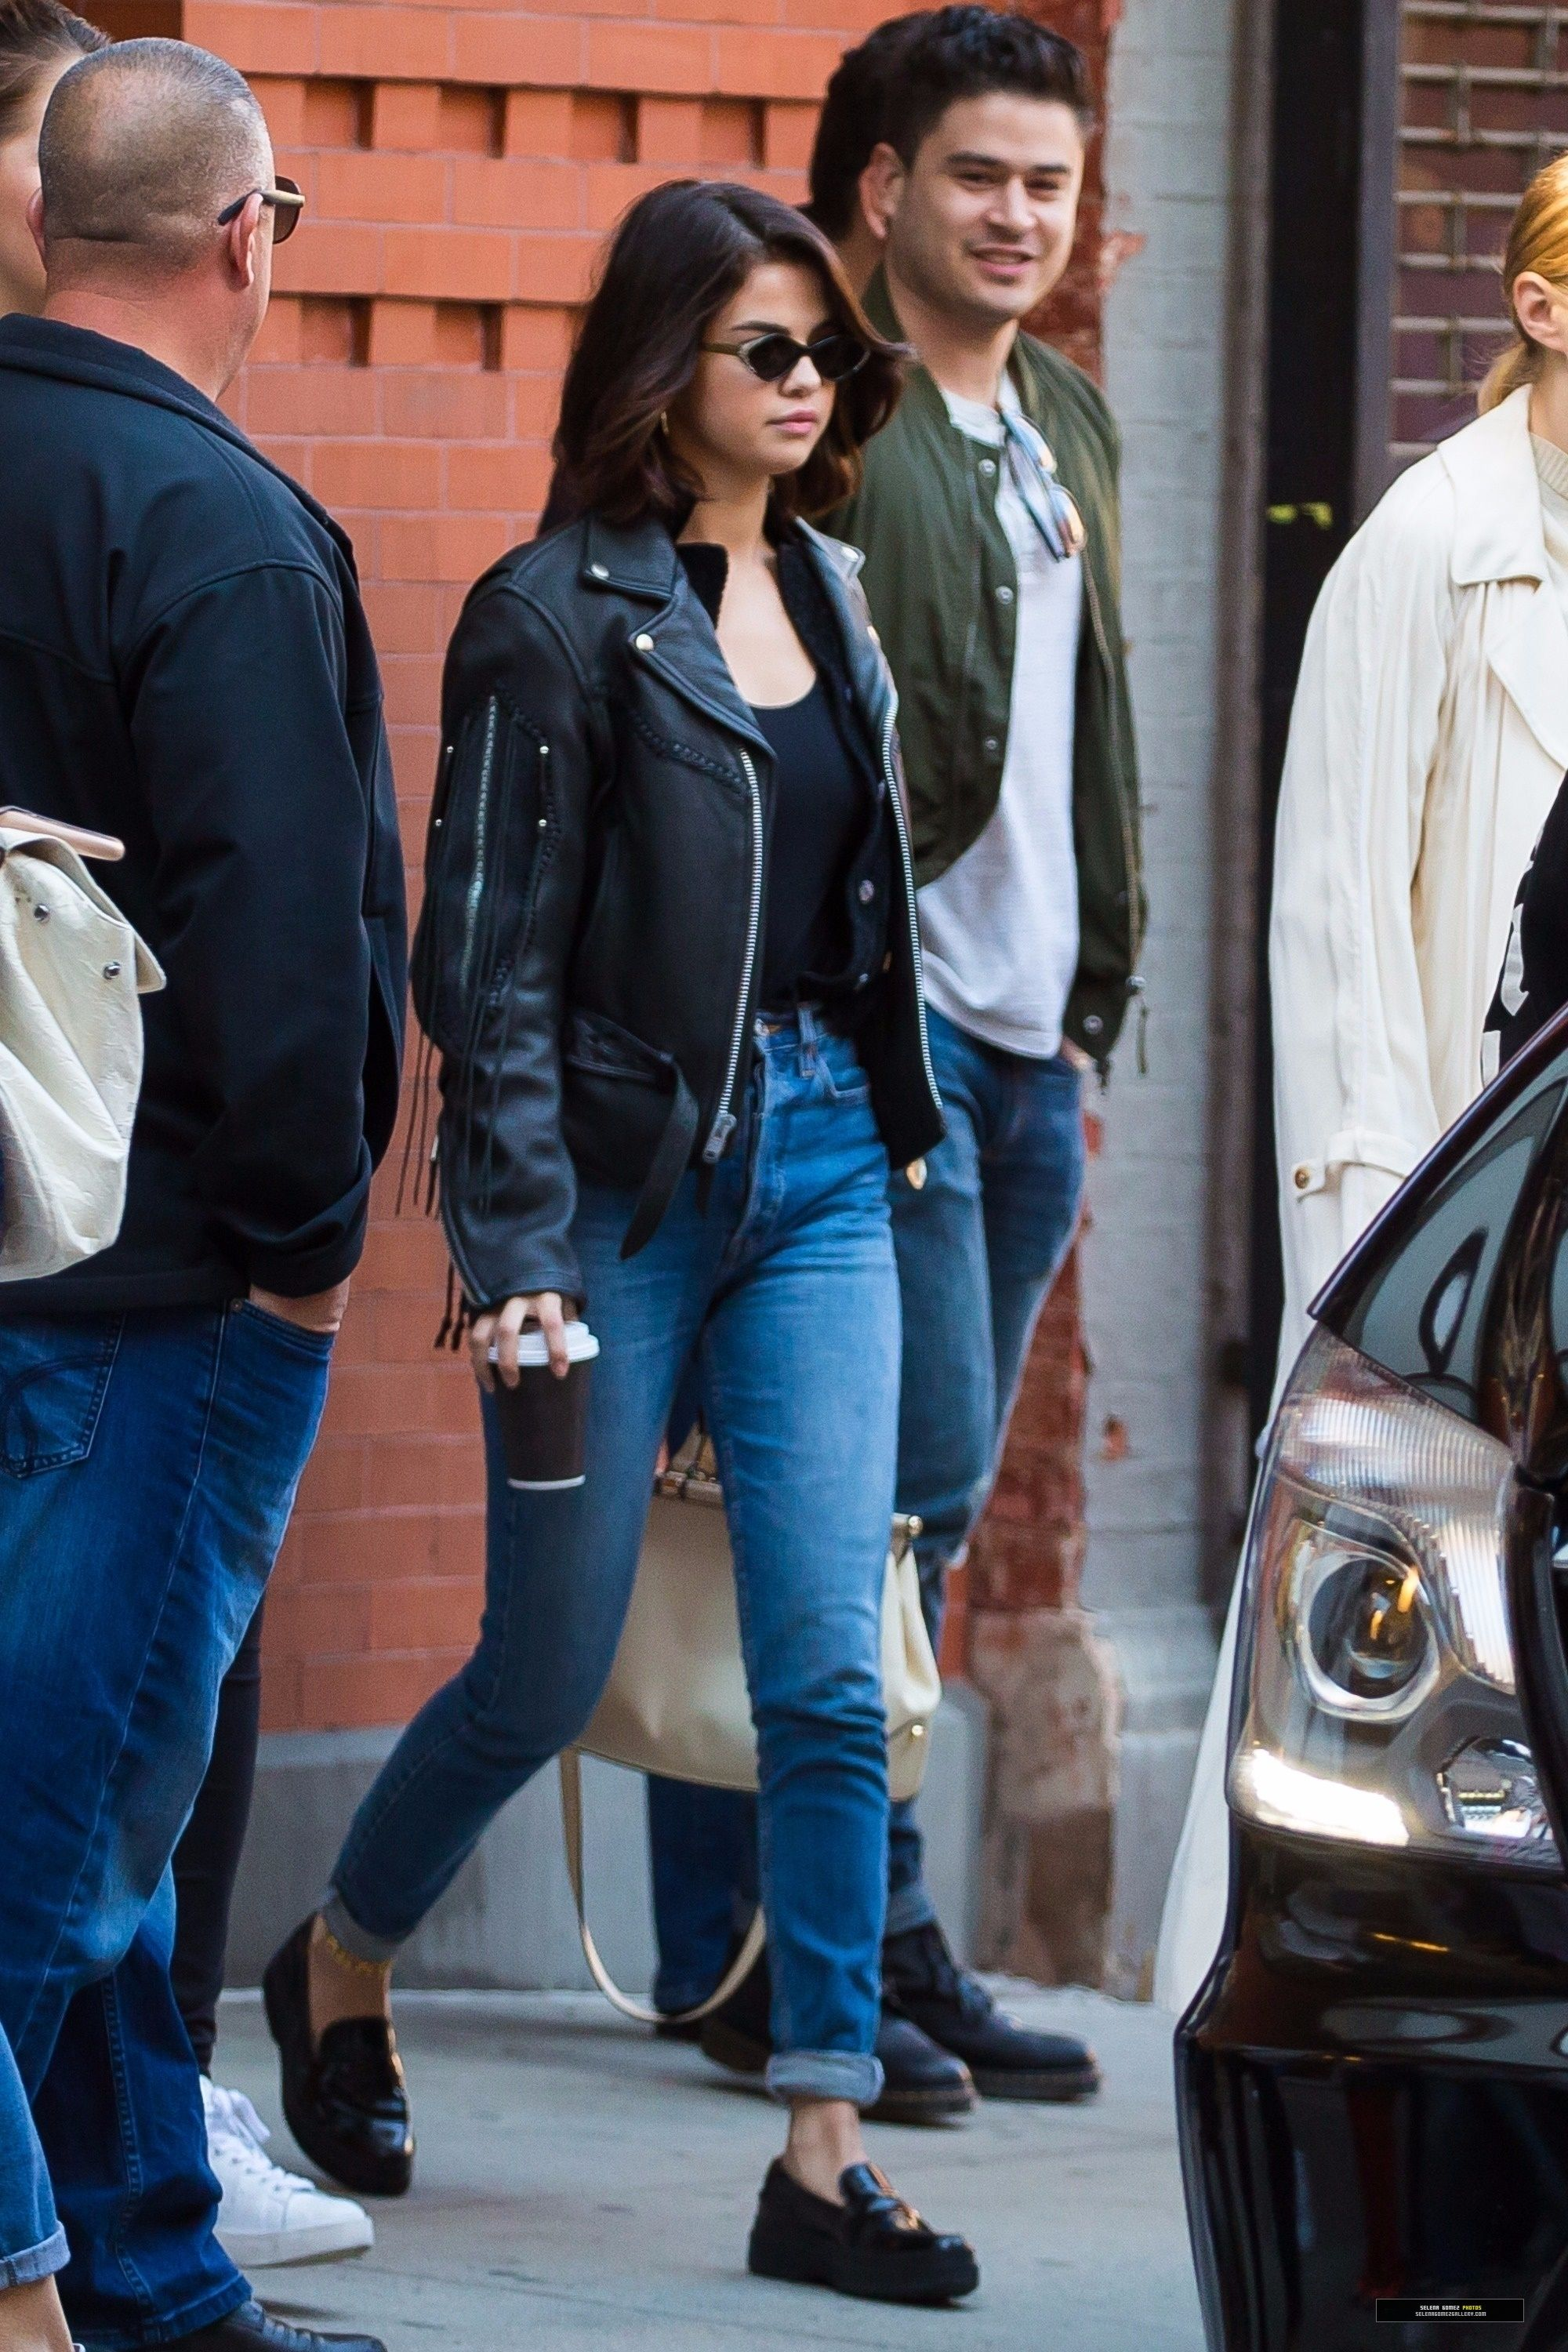 Selena Gomez in 2019 | Selena gomez casual, Selena gomez outfits, Biker jacket outfit women